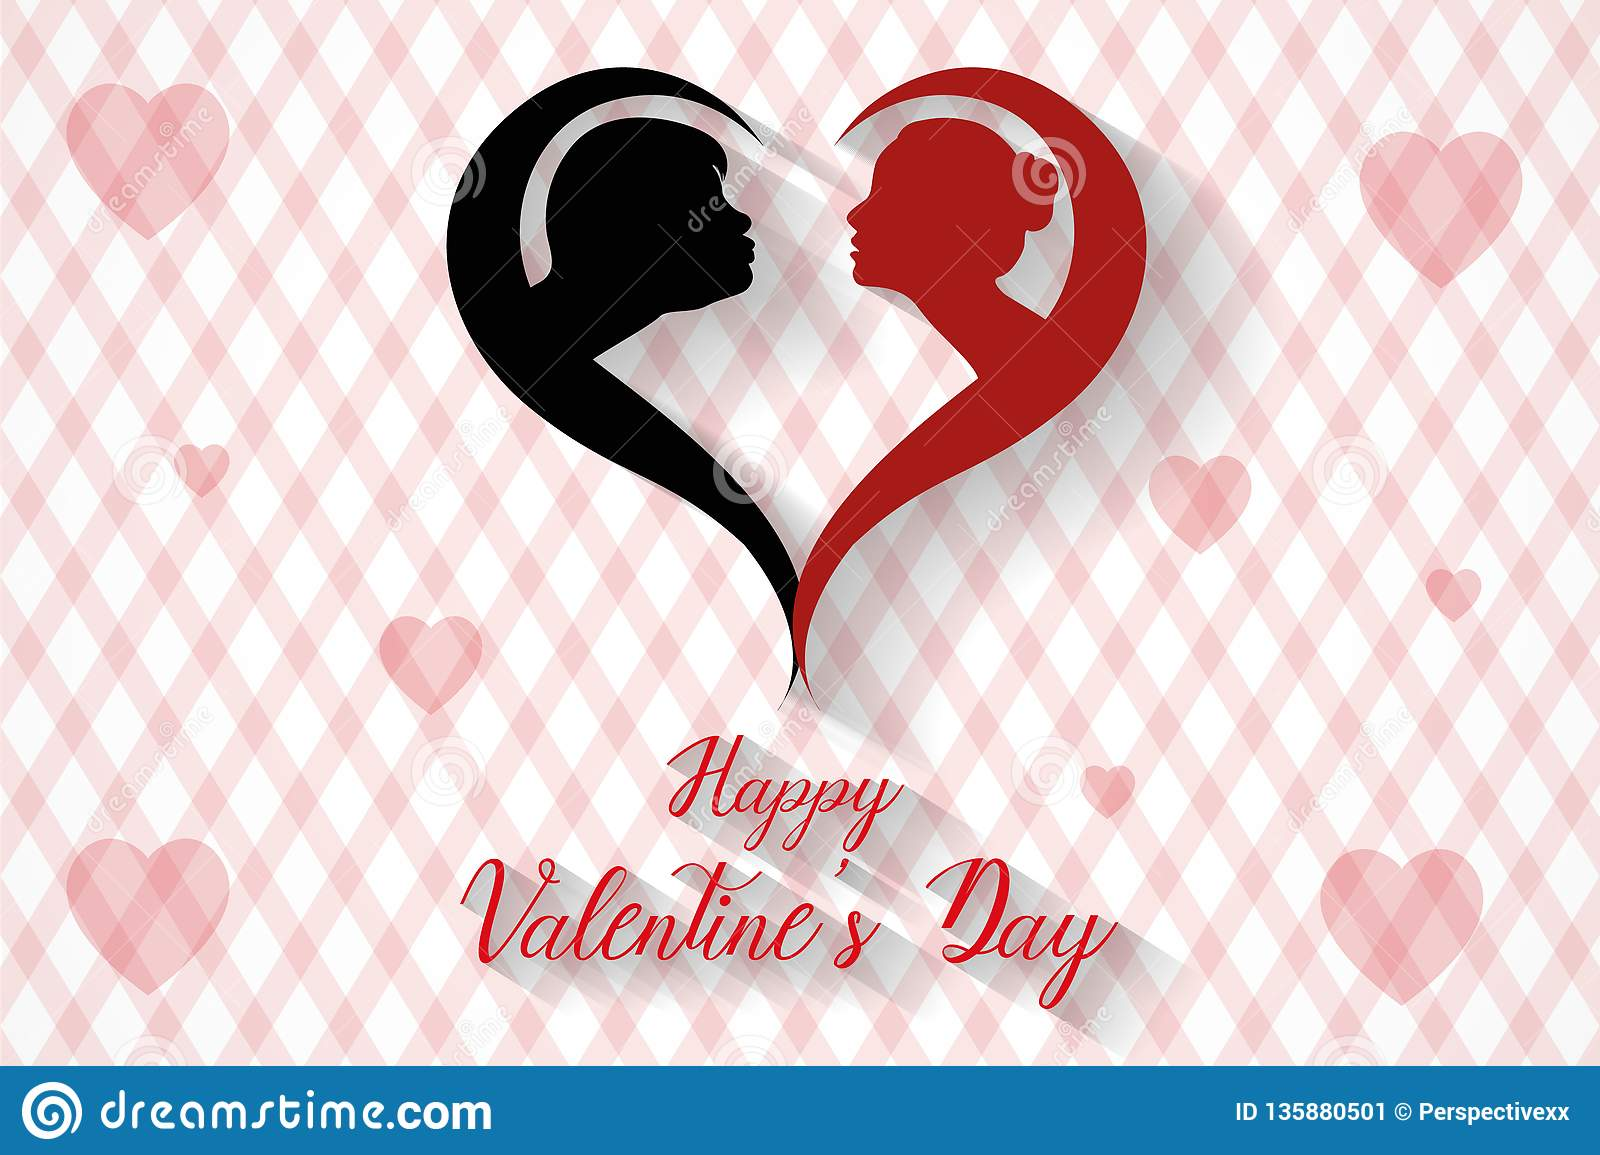 Happy valentine`s day kissing couples silhouette background, vector